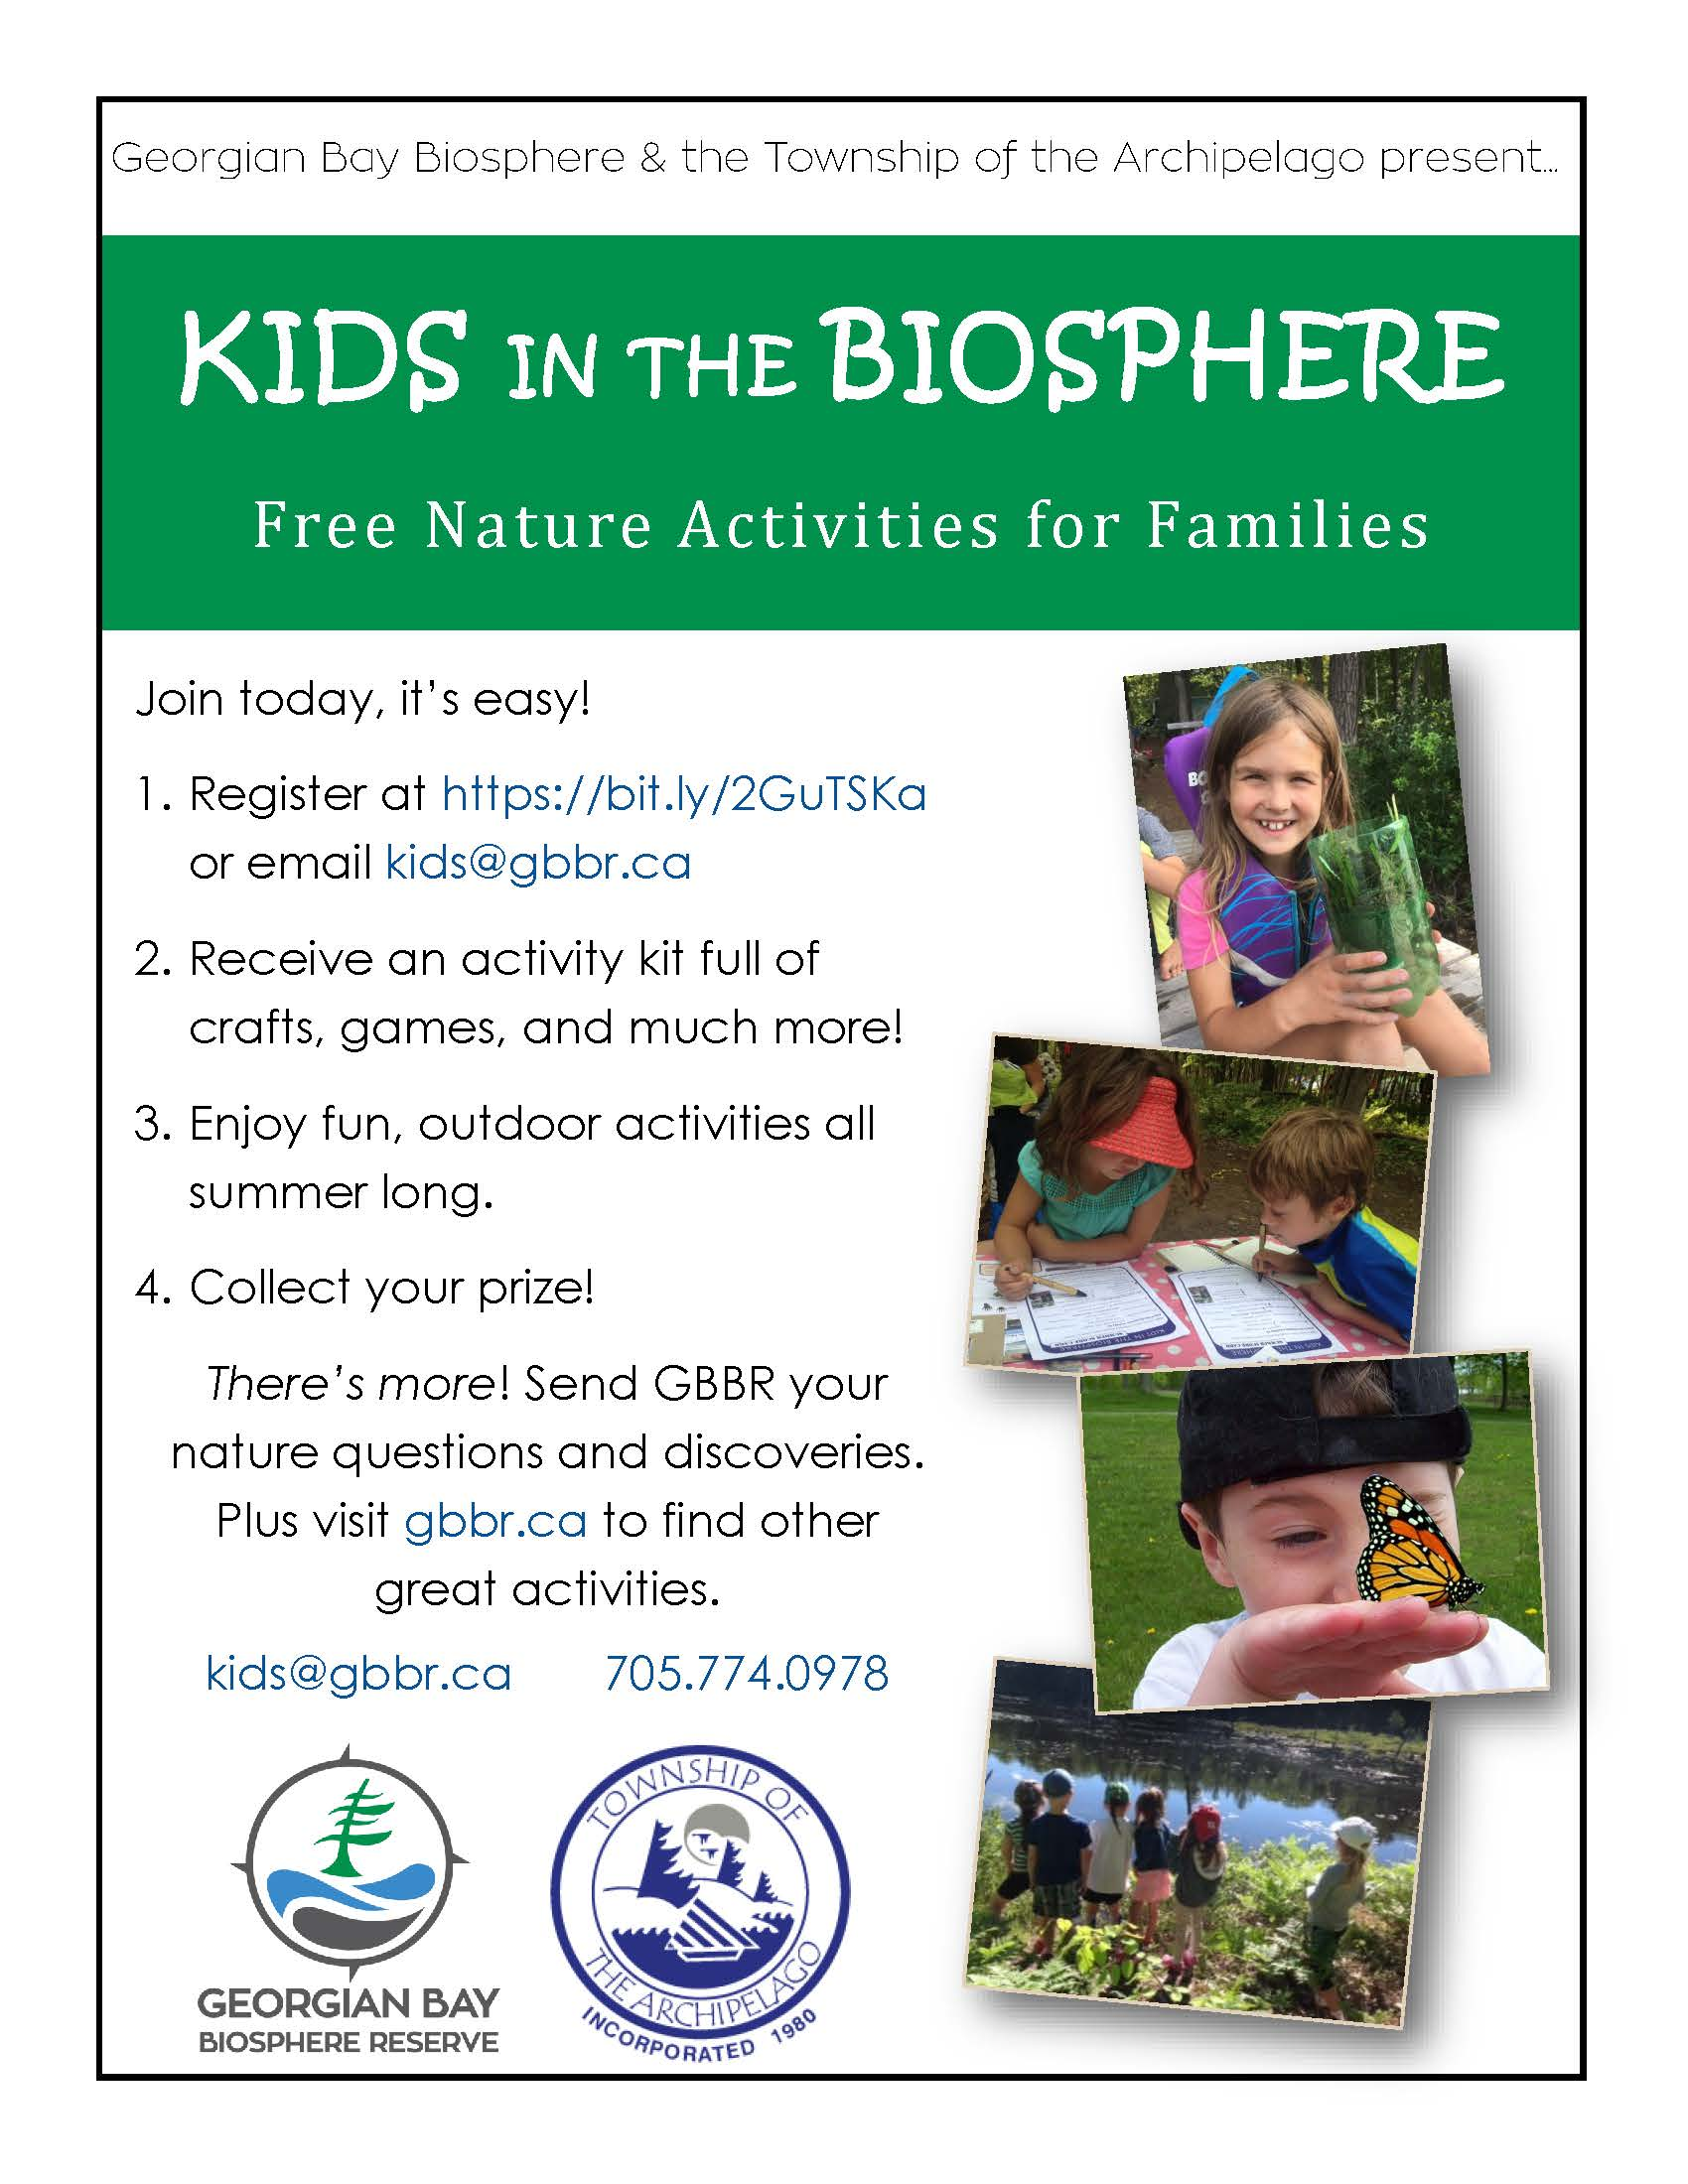 Kids in the Biosphere Poster 2019.jpg